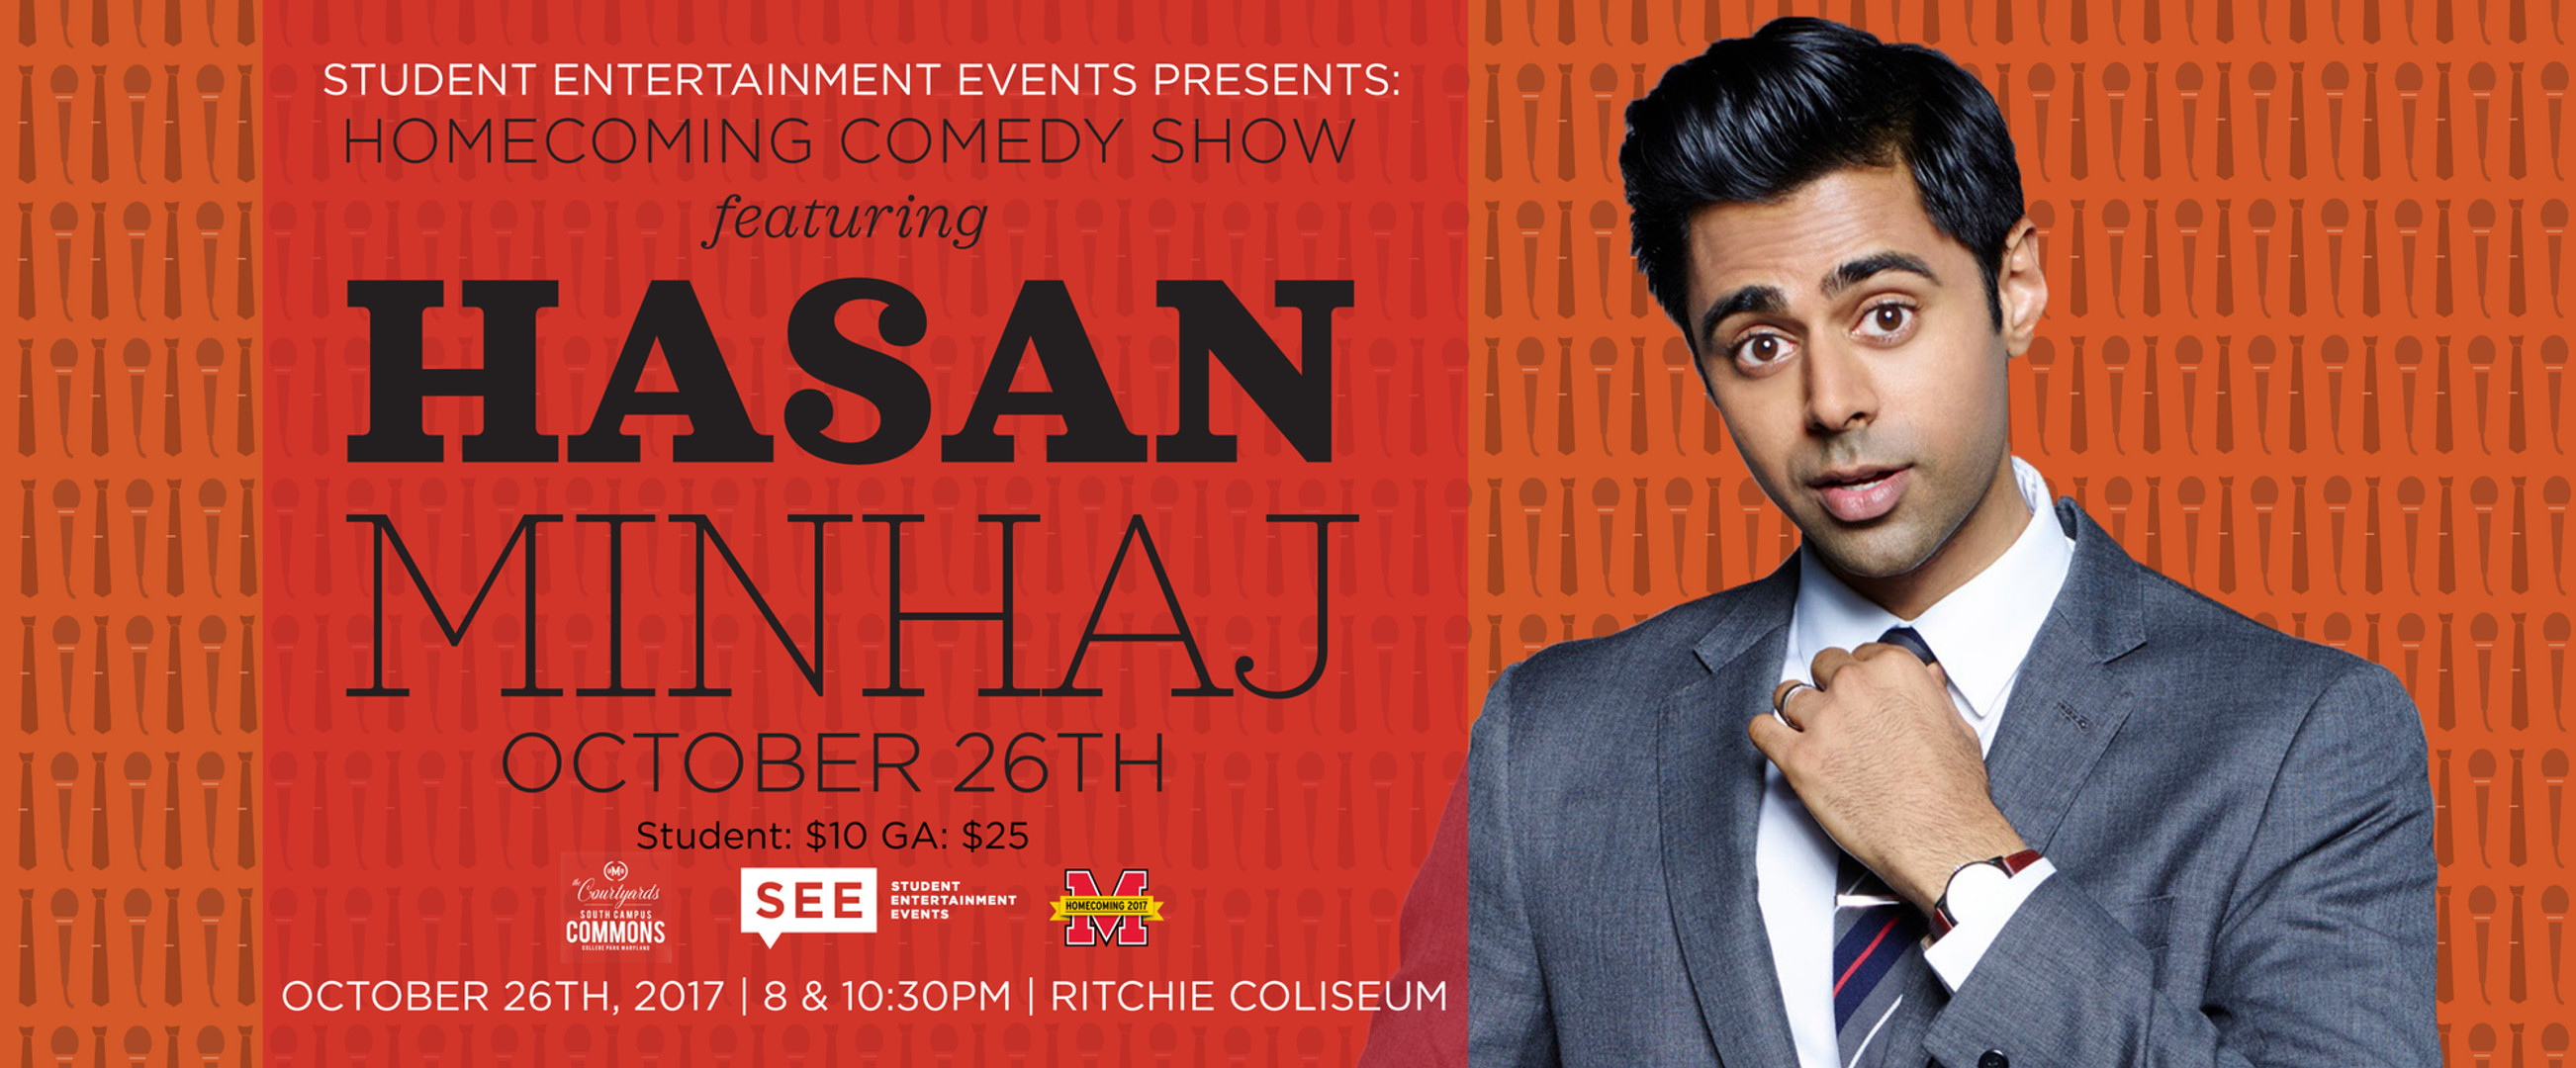 Hasan Minhaj Homecoming